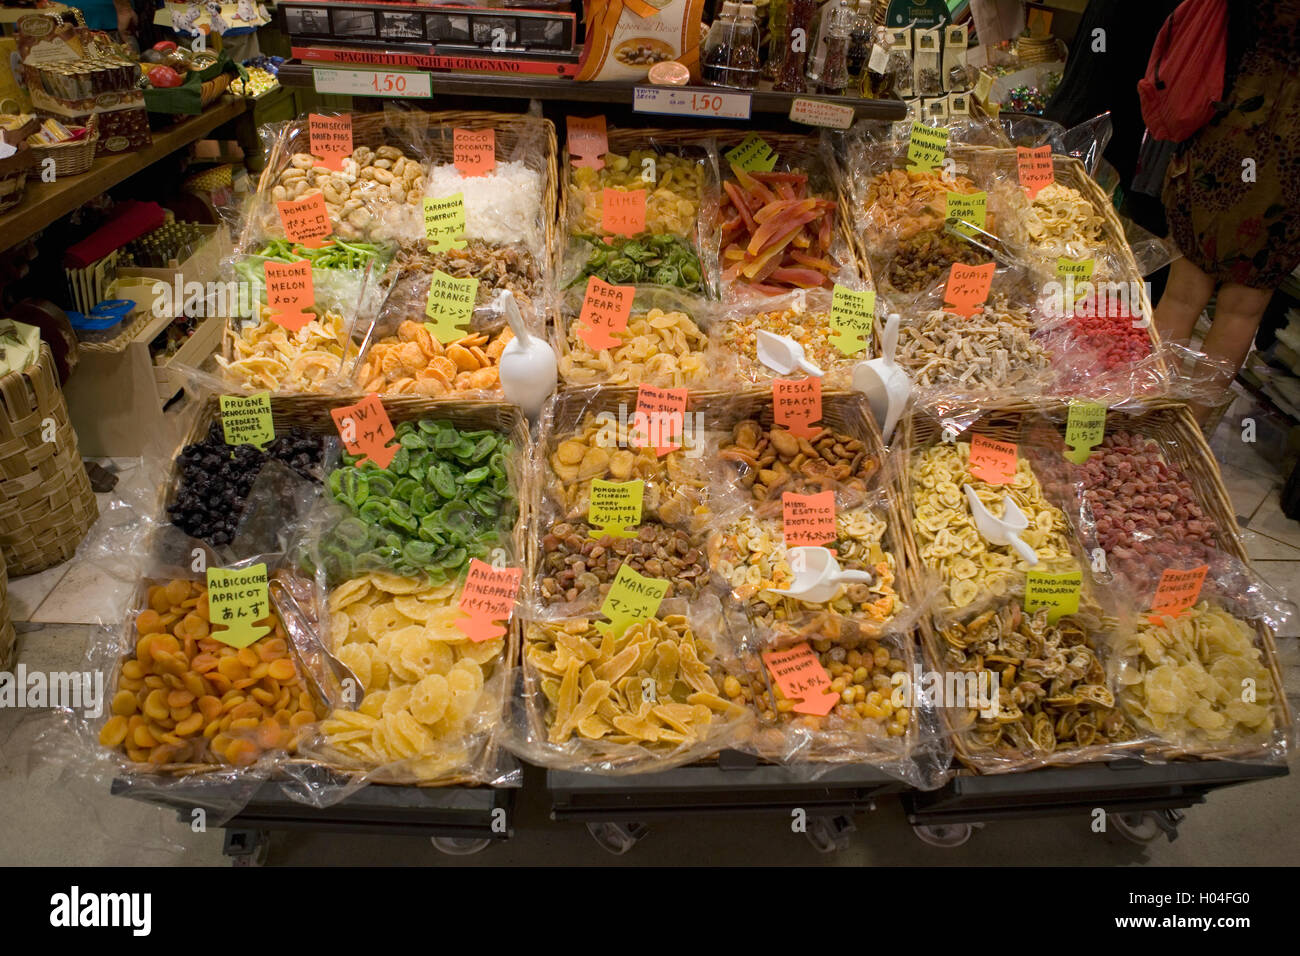 Dried fruit stall in the Mercato Centrale, San Giovanni, Florence, Italy - Stock Image